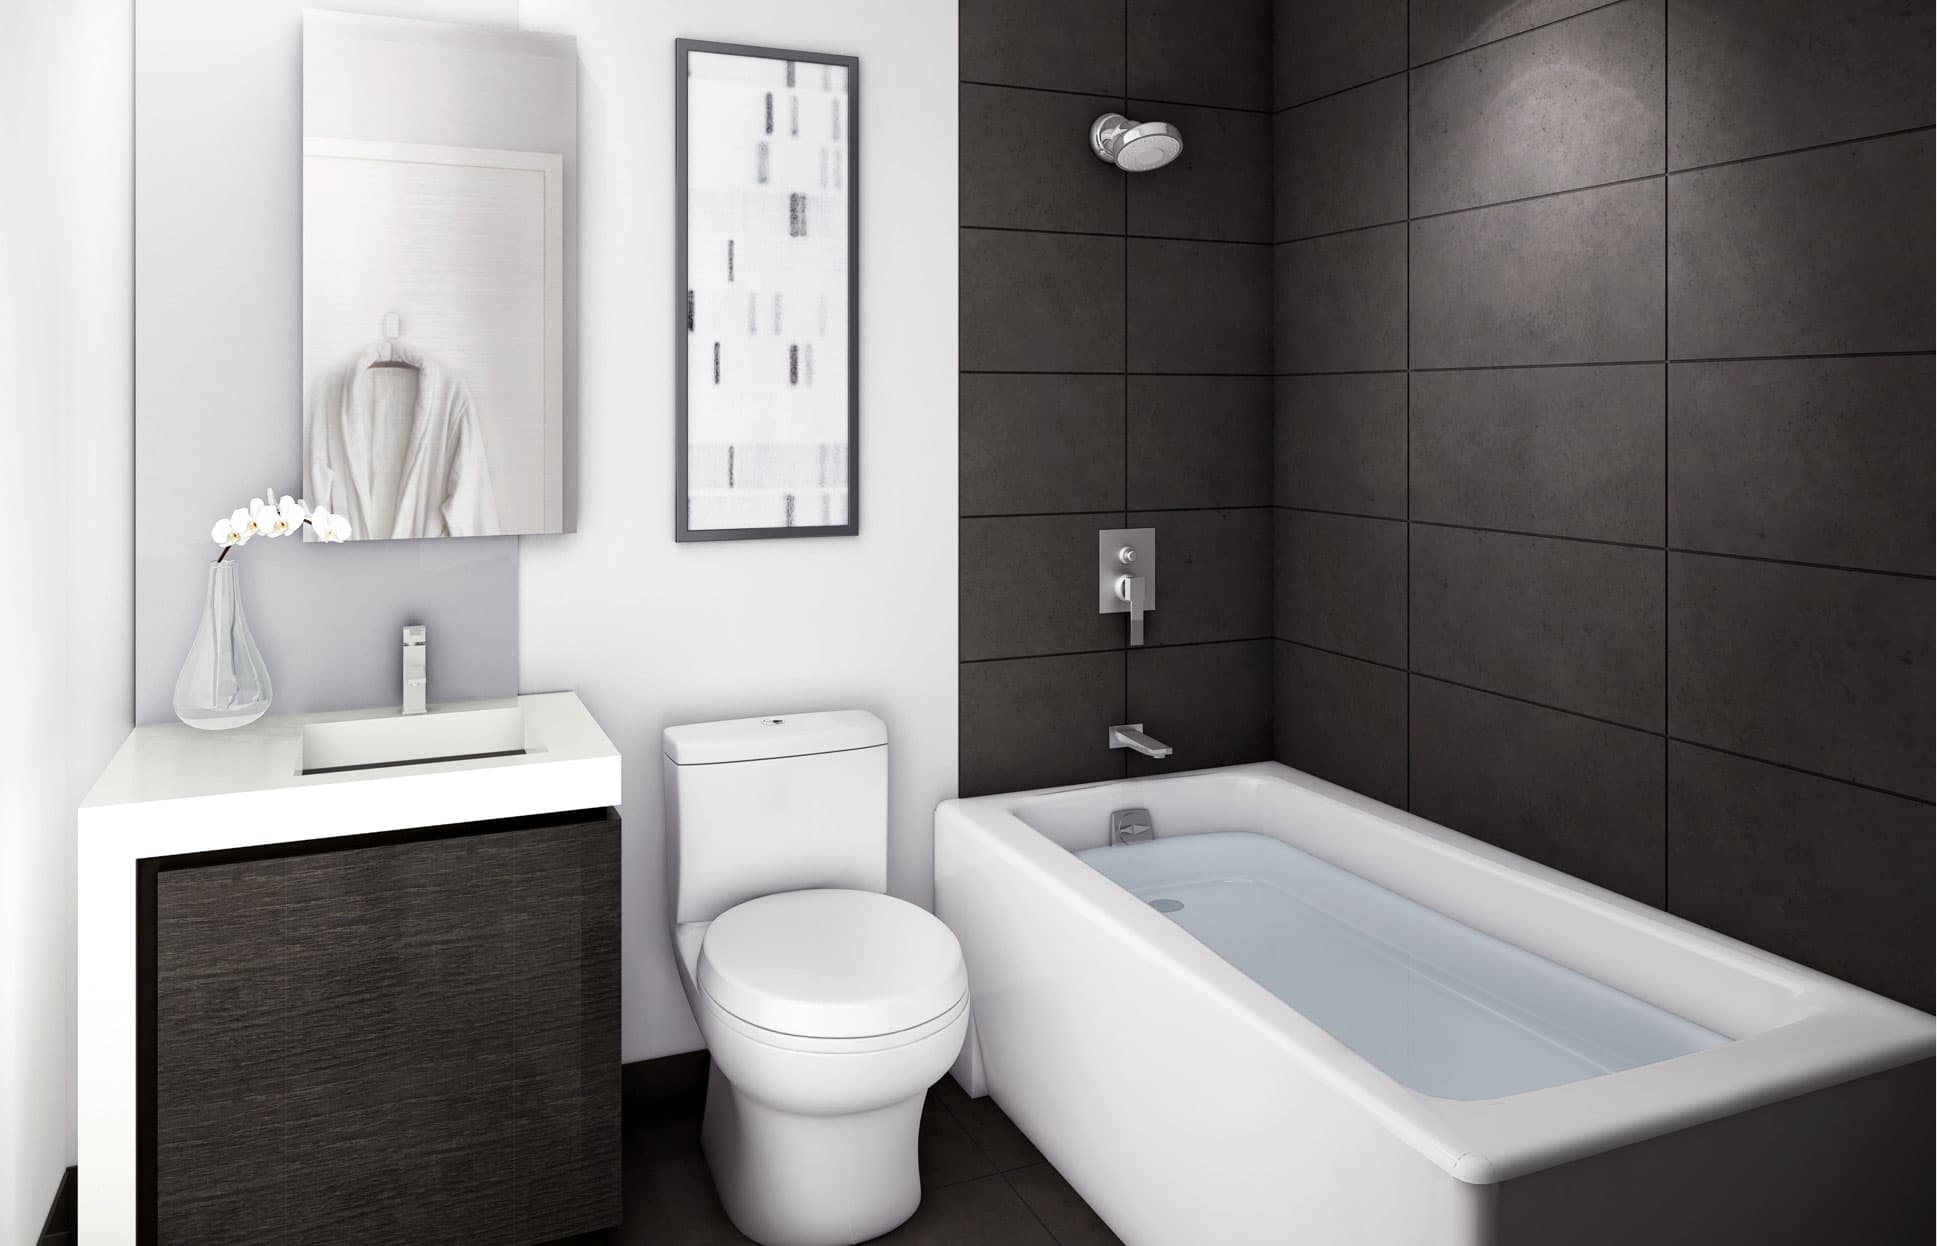 5 Small Bathroom Ideas to Find More Space - Wohomen on Bathroom Designs For Small Spaces  id=33399